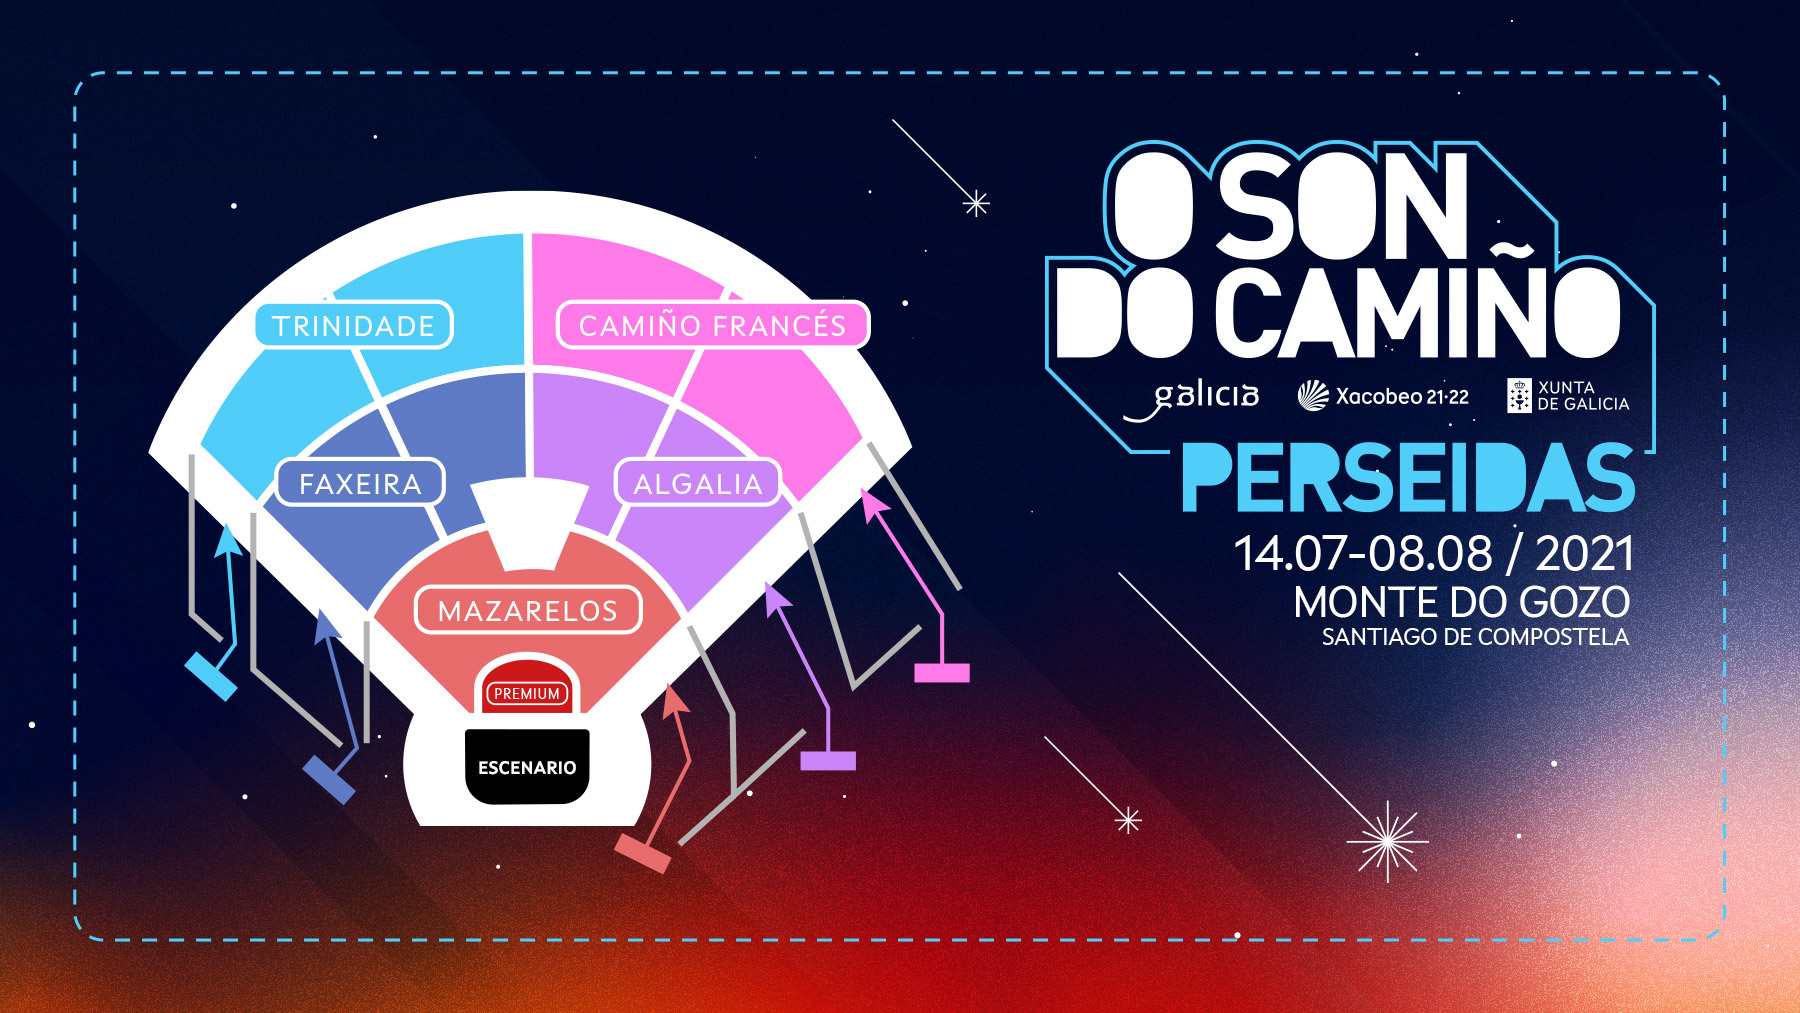 O Son do Camino Perseidas Manual ticket prices requirements and